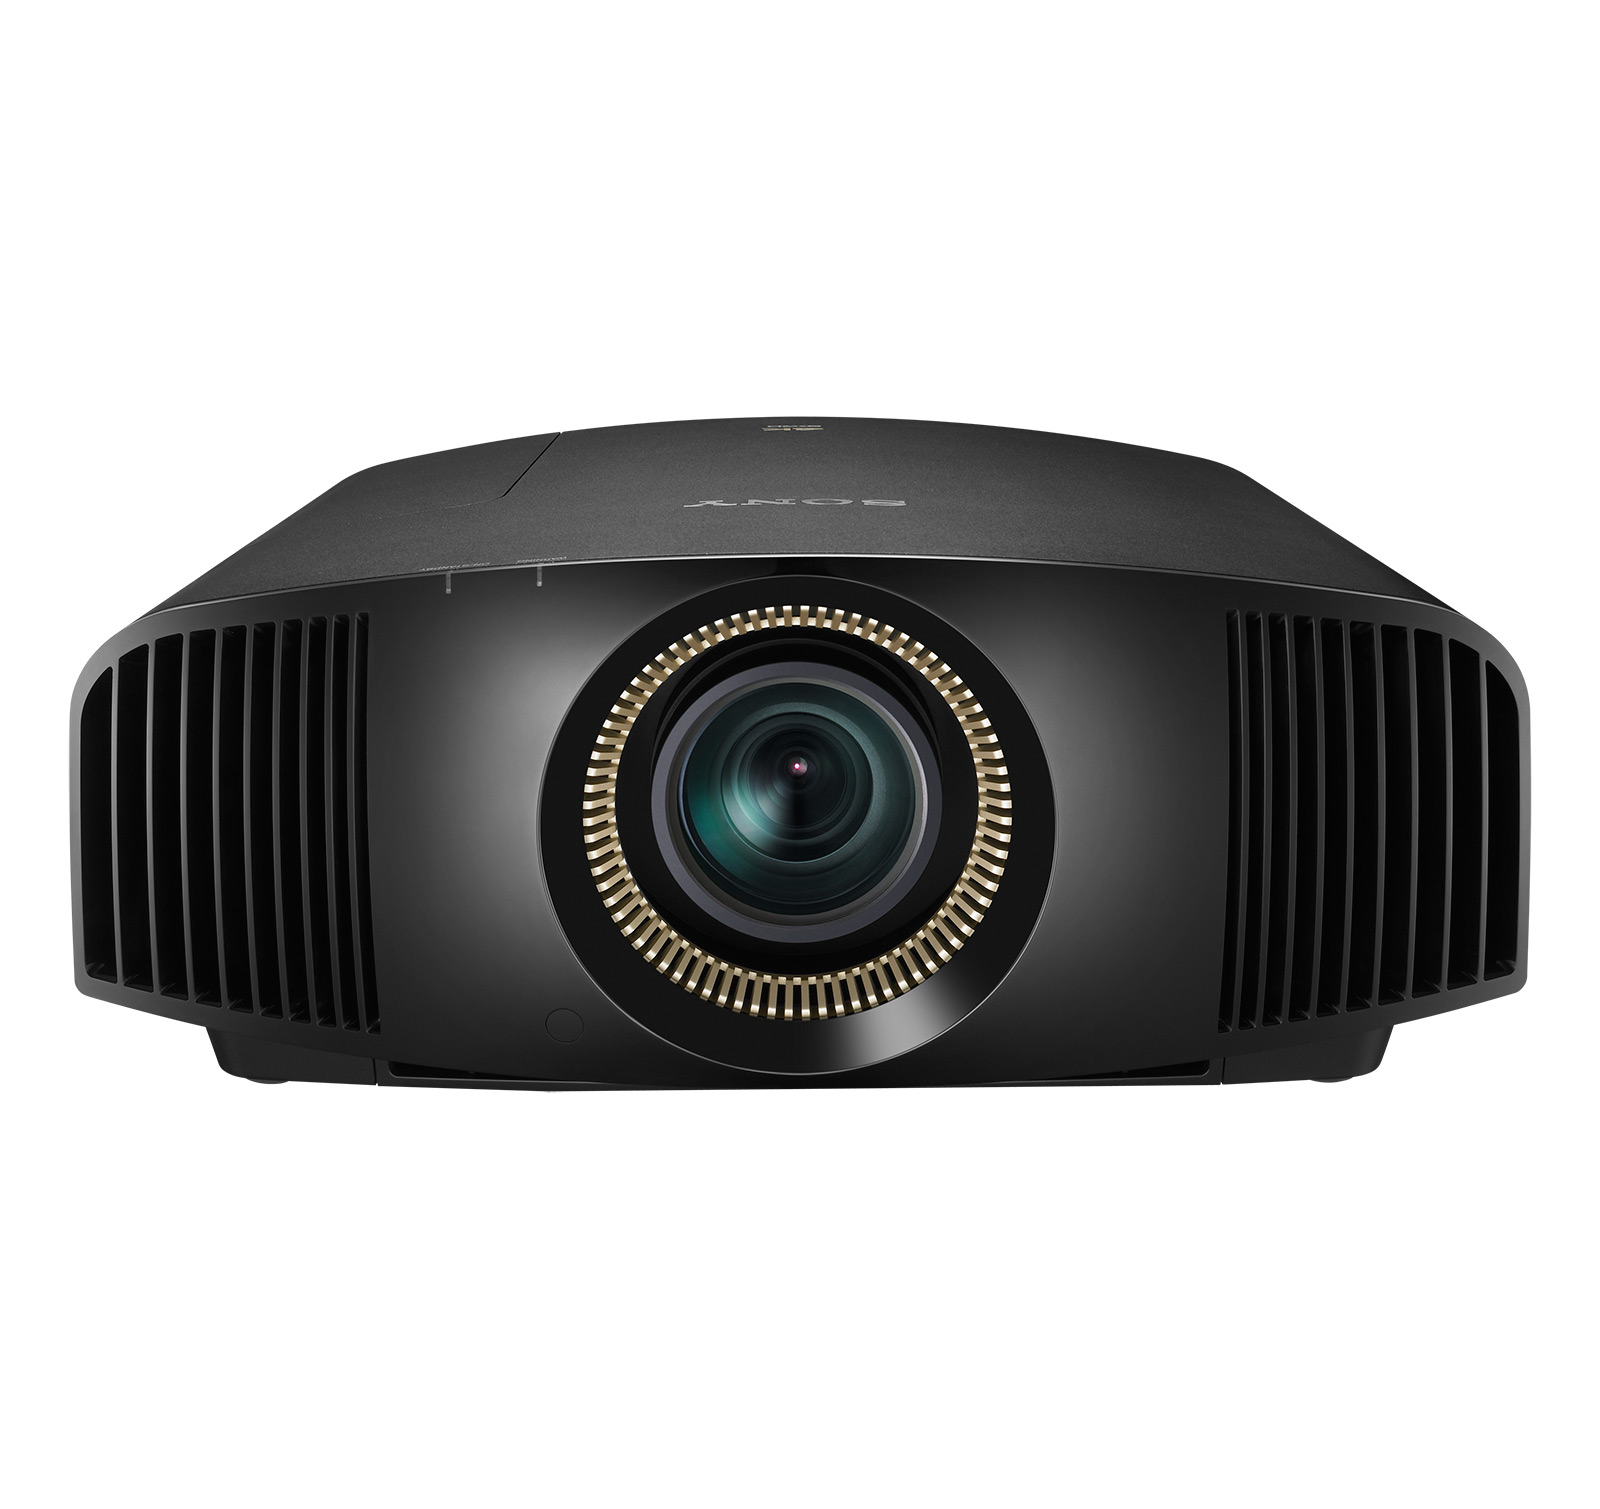 Sony VPL-VW675ES SXRD 4K UHD 3D Front Projector